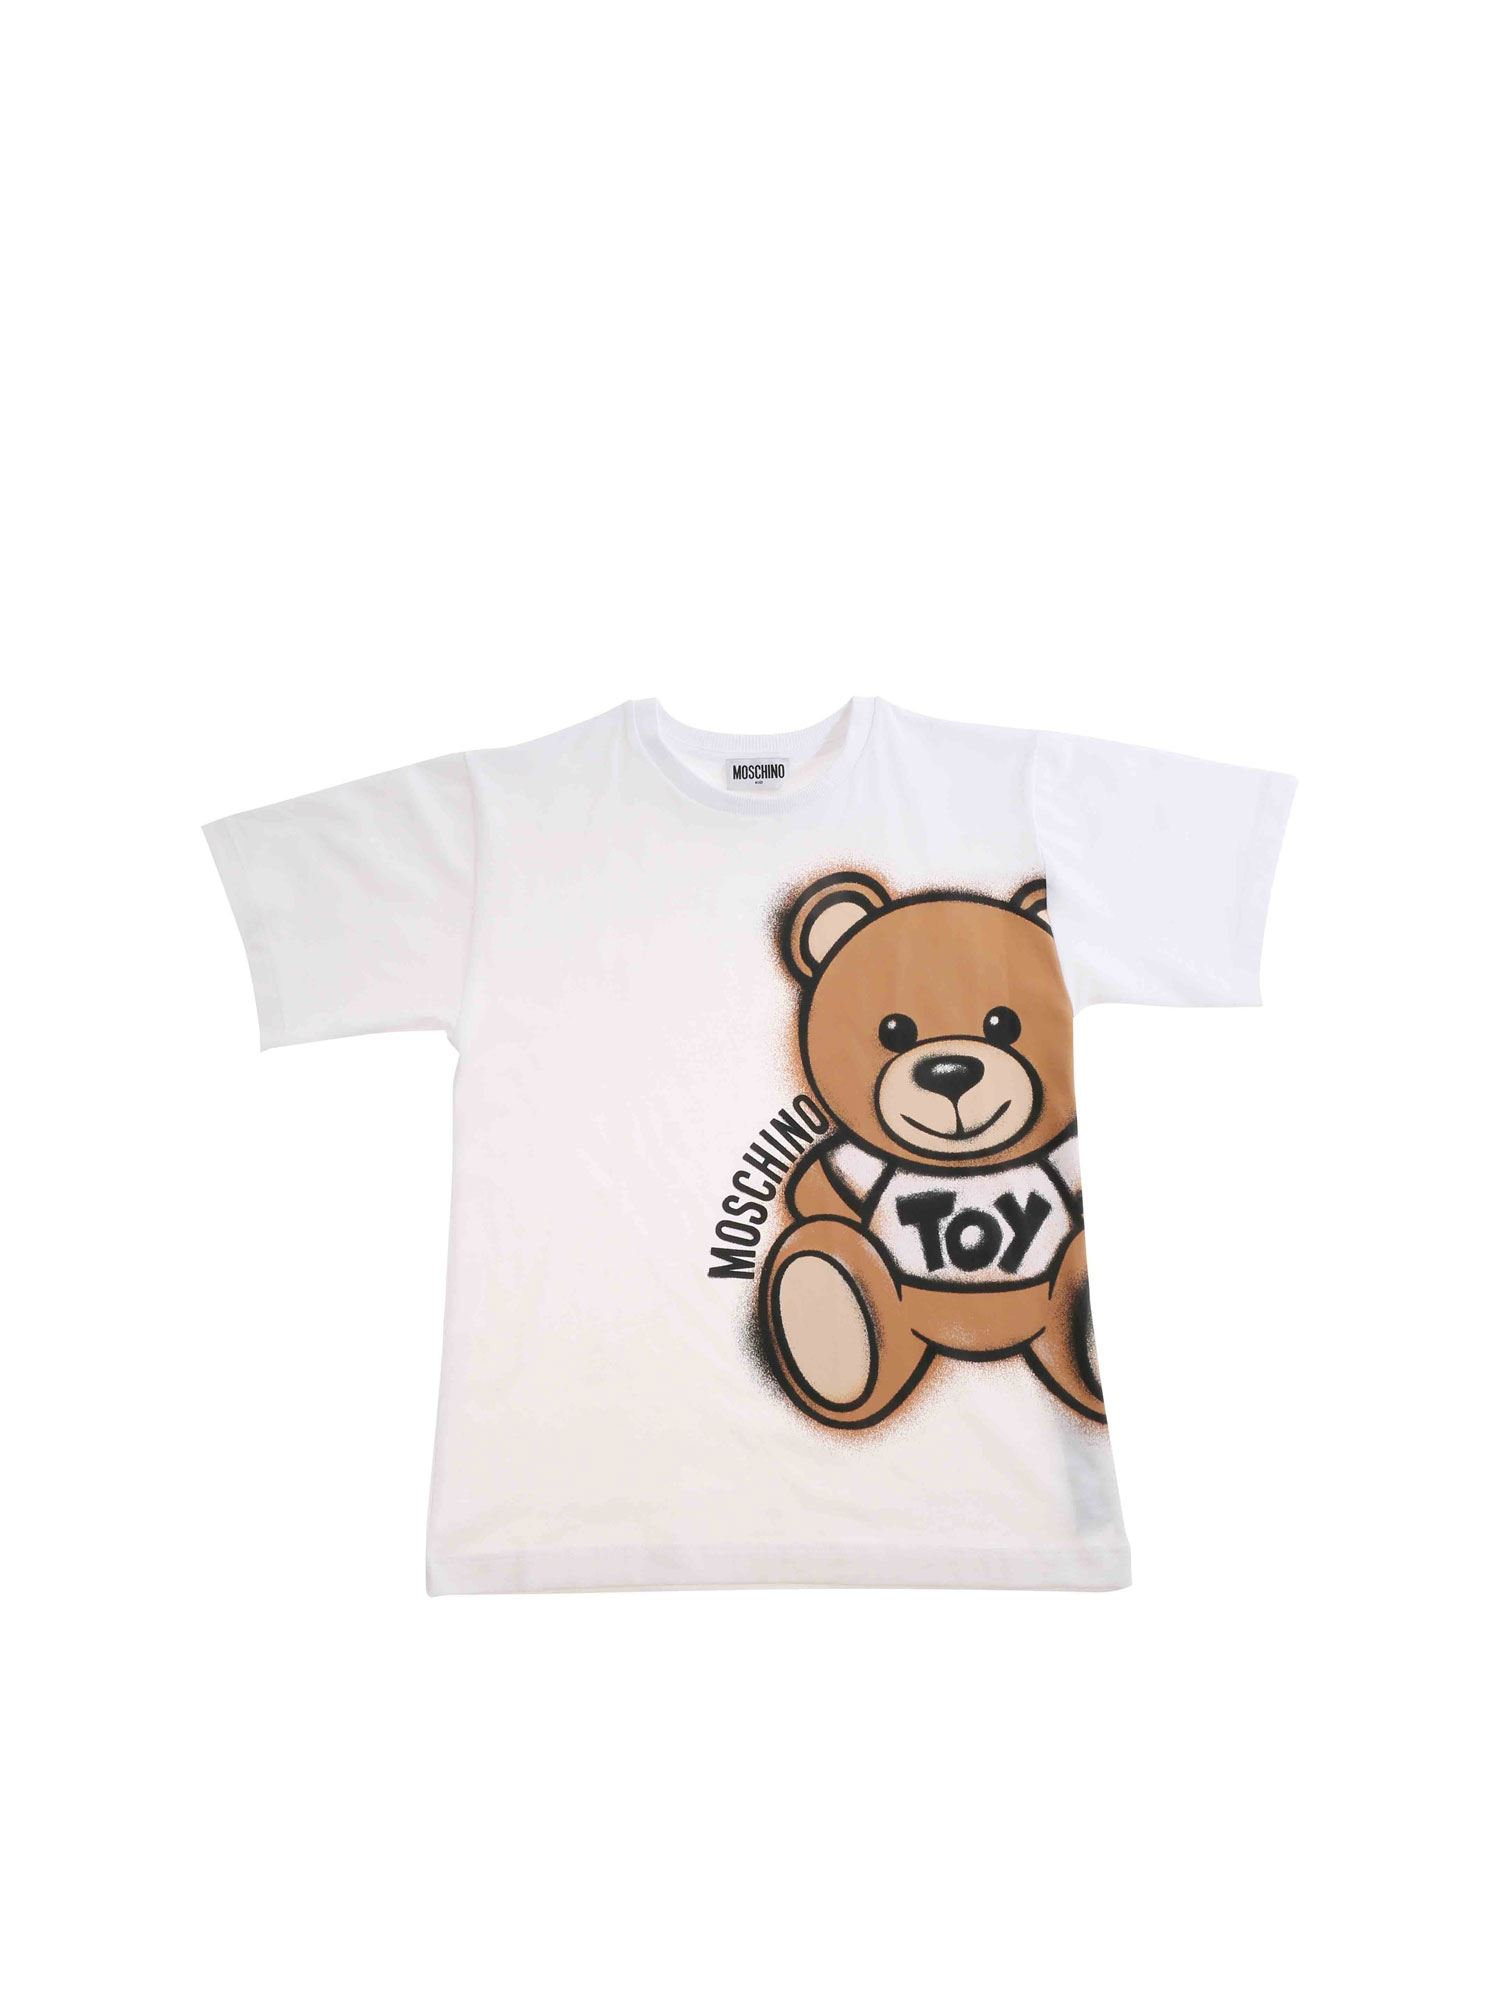 Moschino WHITE TEDDY SPRAY MAXI T-SHIRT